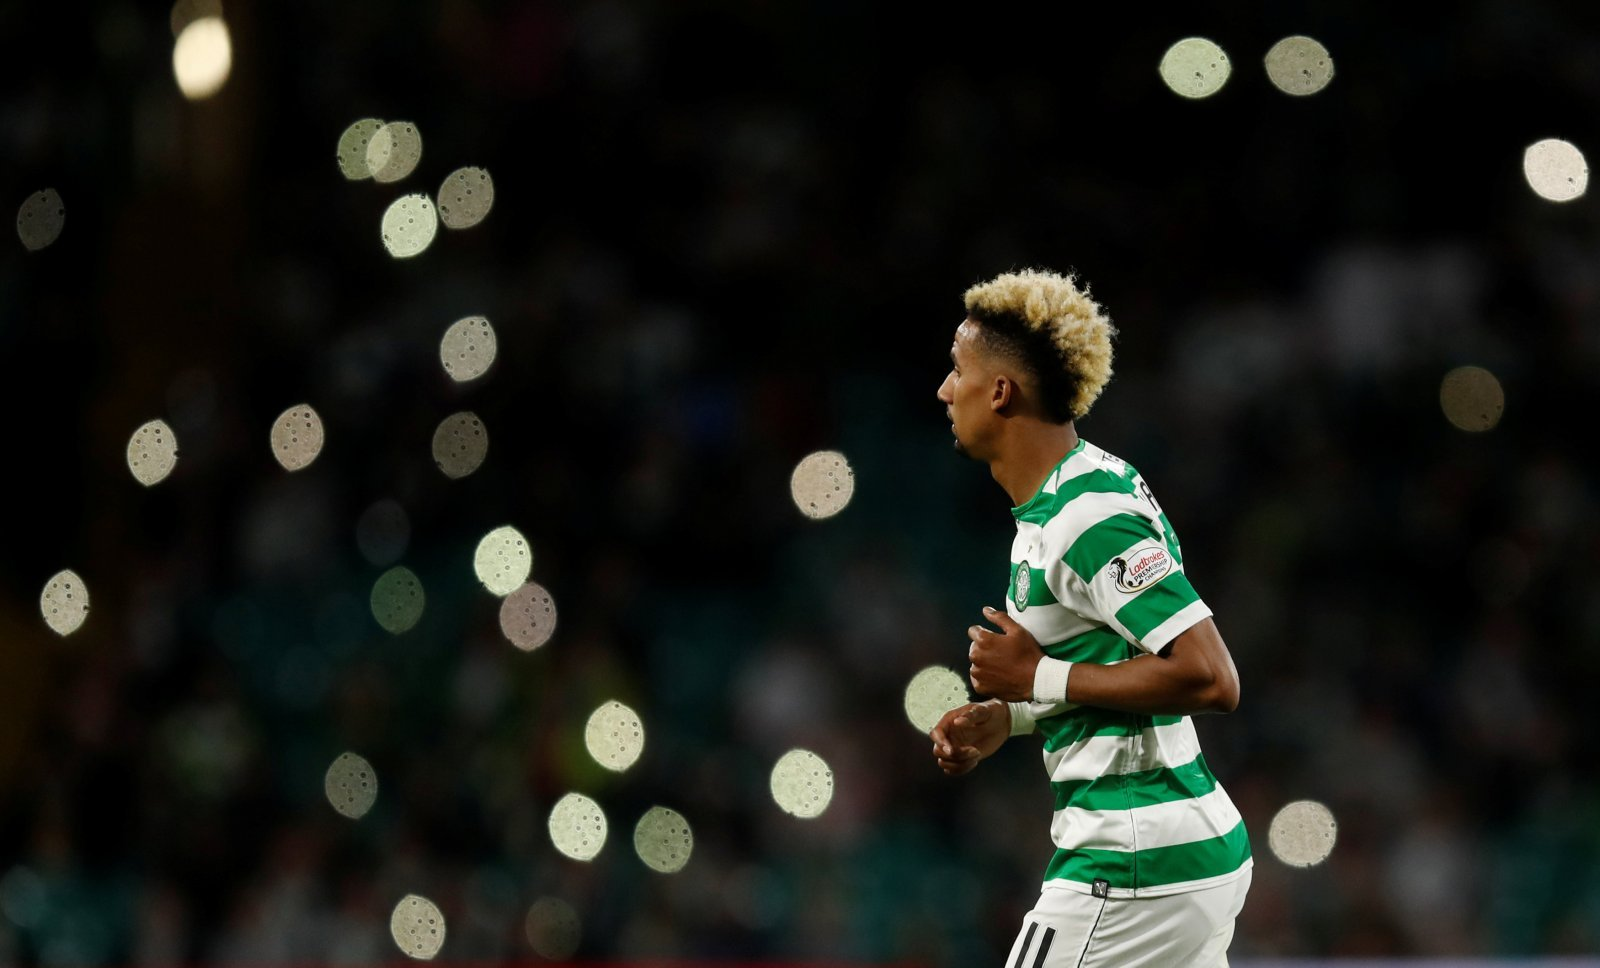 Celtic fans on Twitter spent the half-time break demanding Sinclair come off last night